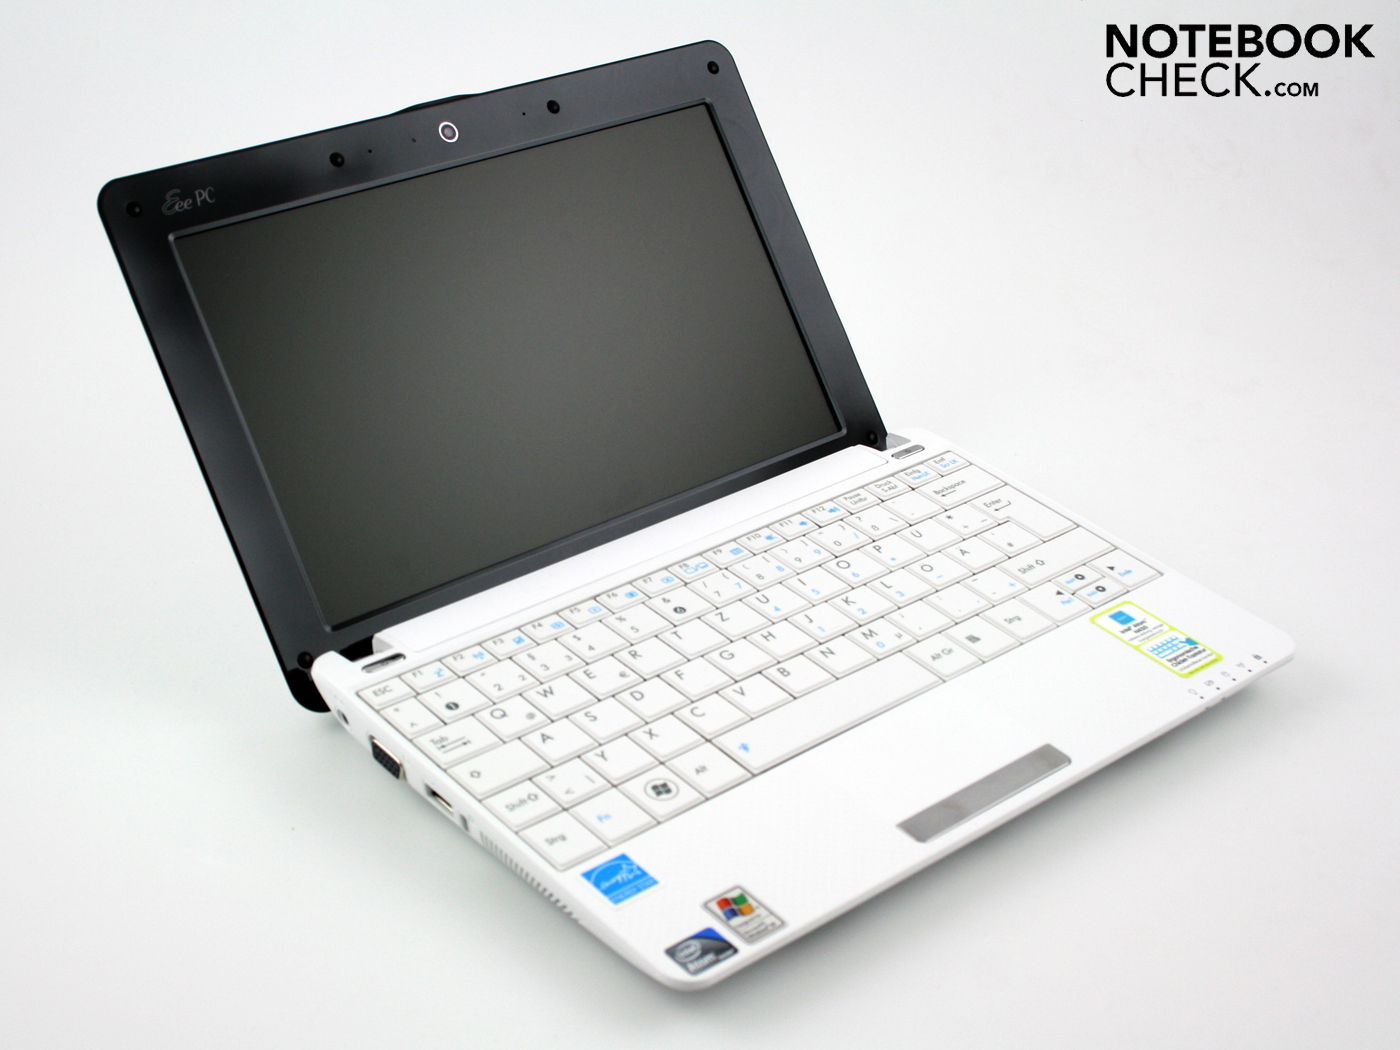 Critique Du Asus Eee Pc 1001p Notebookcheck Fr